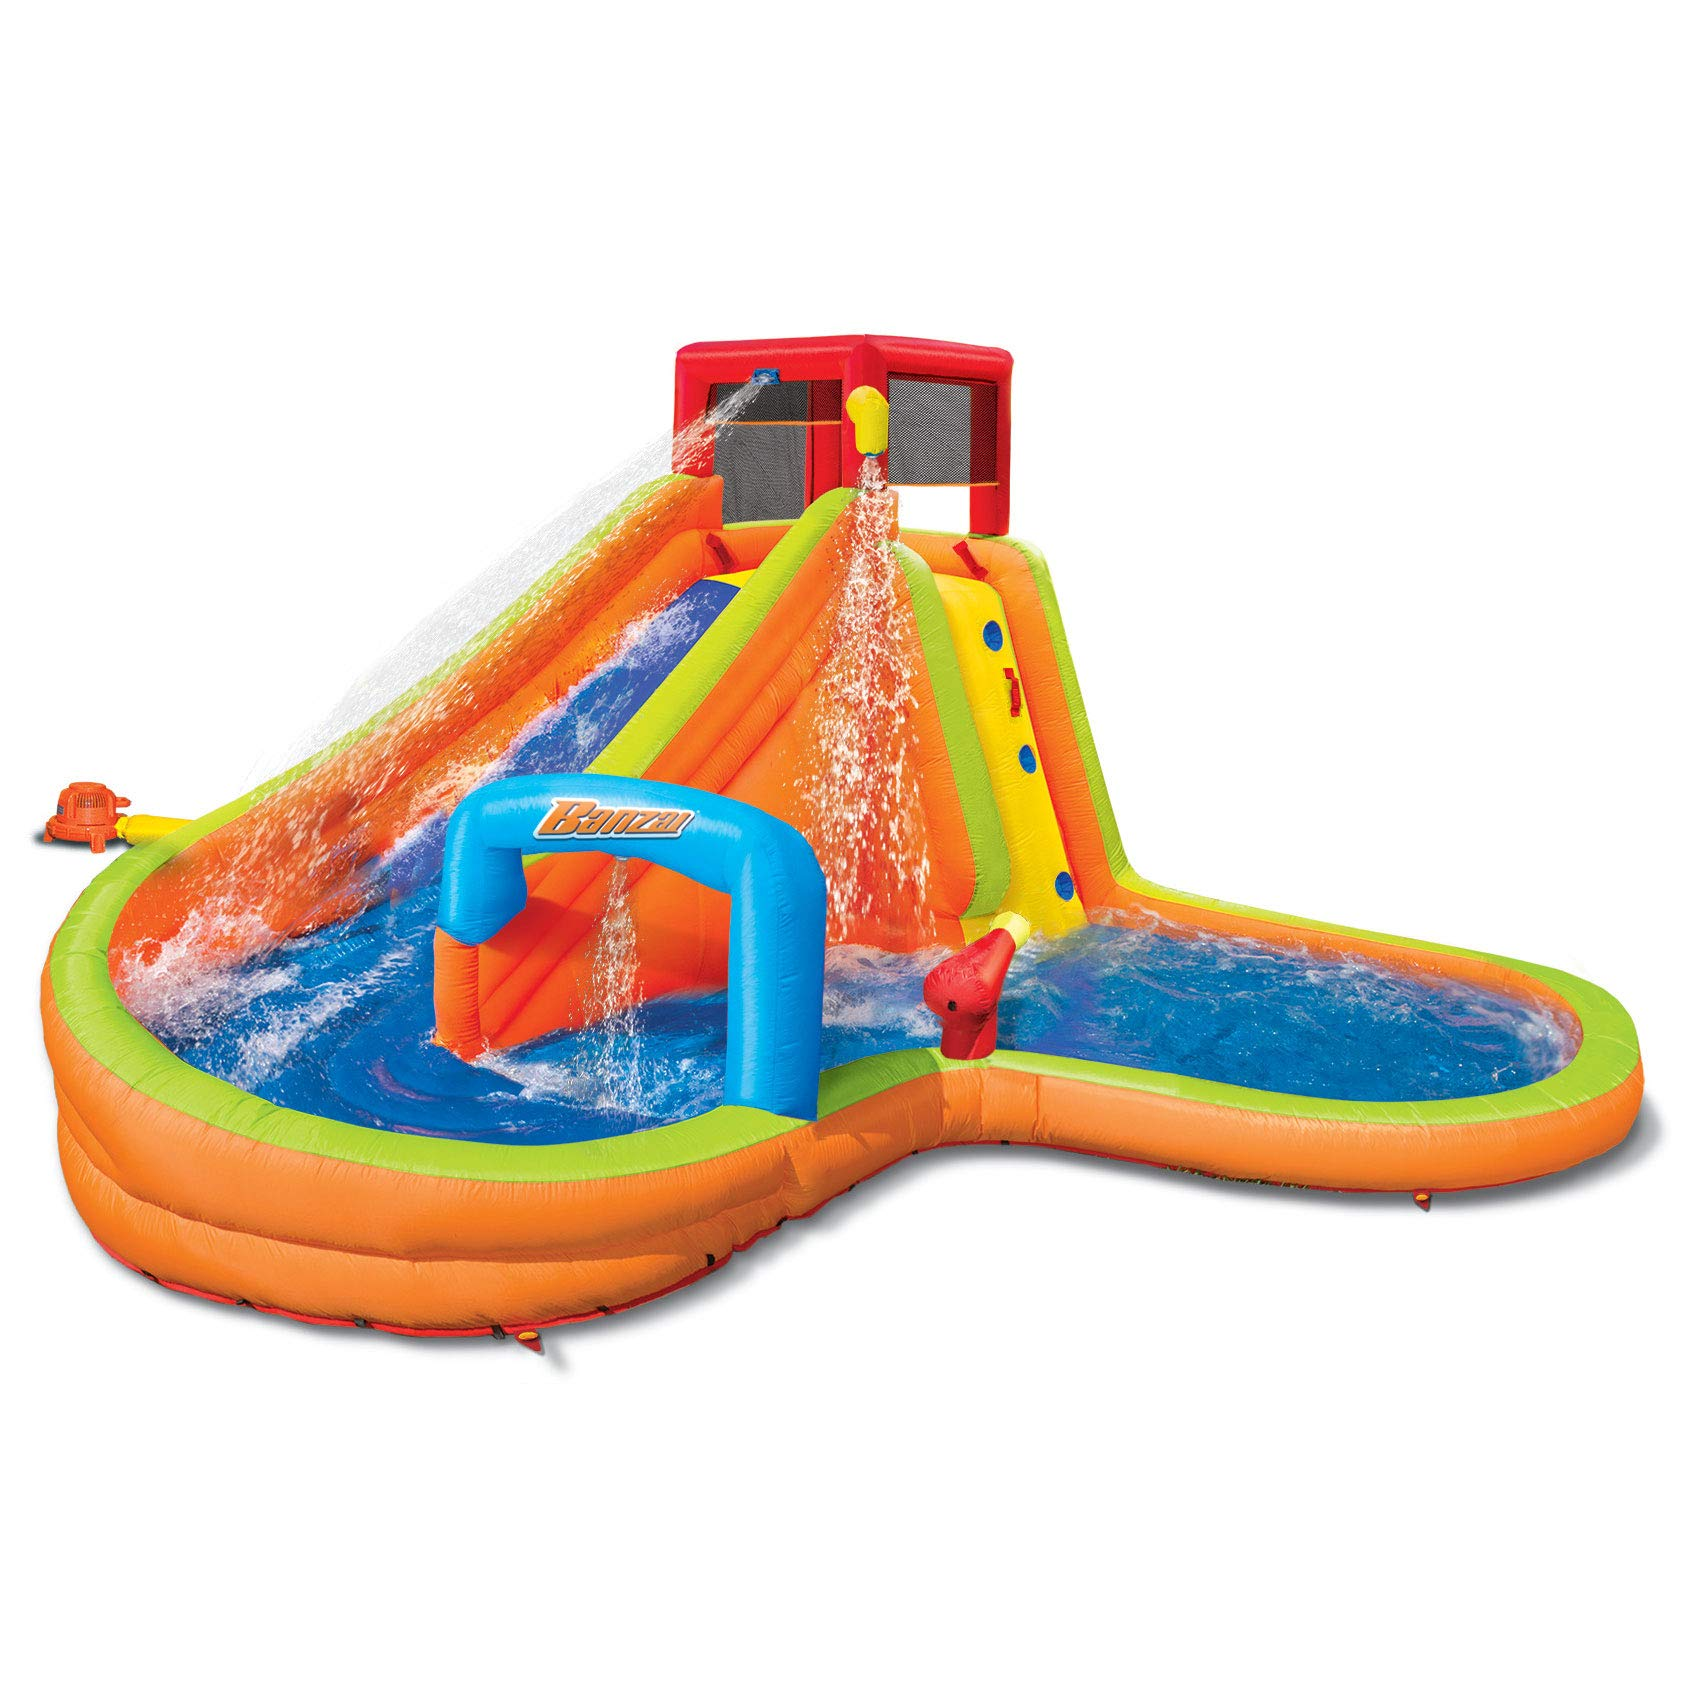 BANZAI Lazy River Inflatable Outdoor Adventure Water Park Slide and Splash Pool by BANZAI